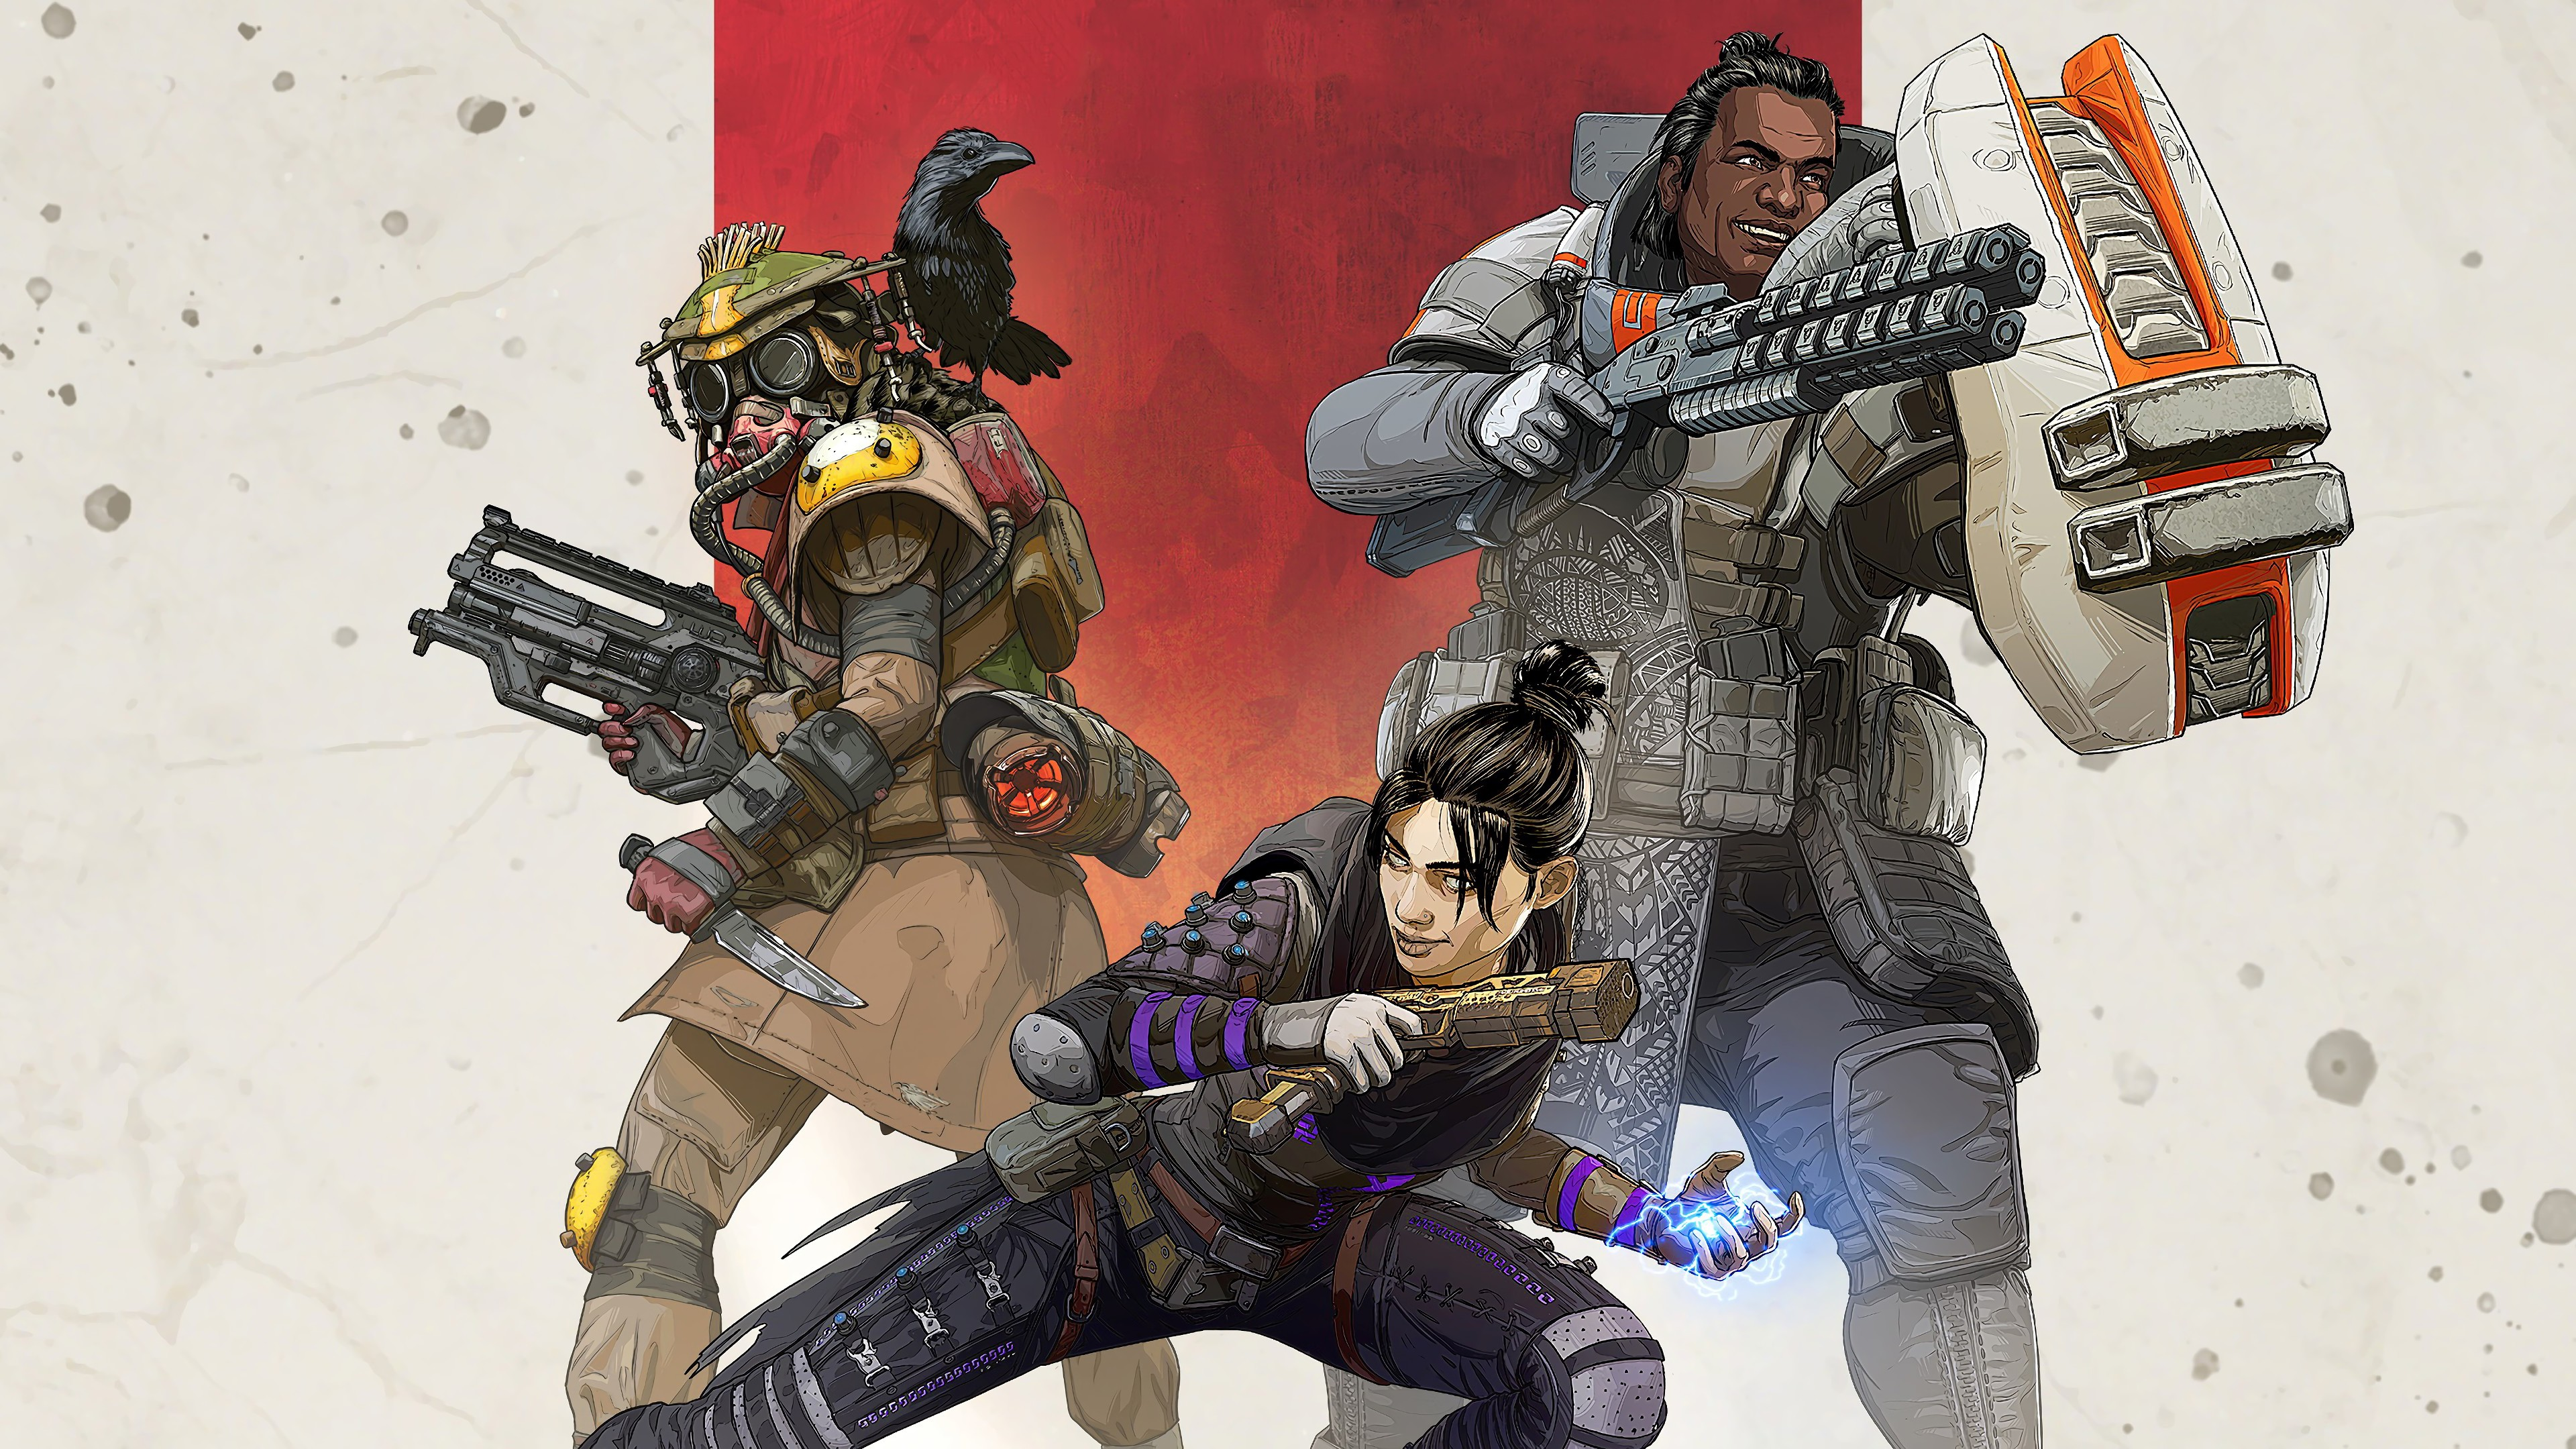 apex legends characters wraith gibraltar bloodhound 4K 21 - Apex Legends 2019 4k - Apex wallpaper 4k 2019, Apex phone wallpaper hd 4k, Apex legends wallpaper phone, Apex legends wallpaper hd 4kwallpaper, apex legends characters wallpaper hd 4k, Apex legends background hd 4k wallpaper, Apex Legends 4k wallpaper